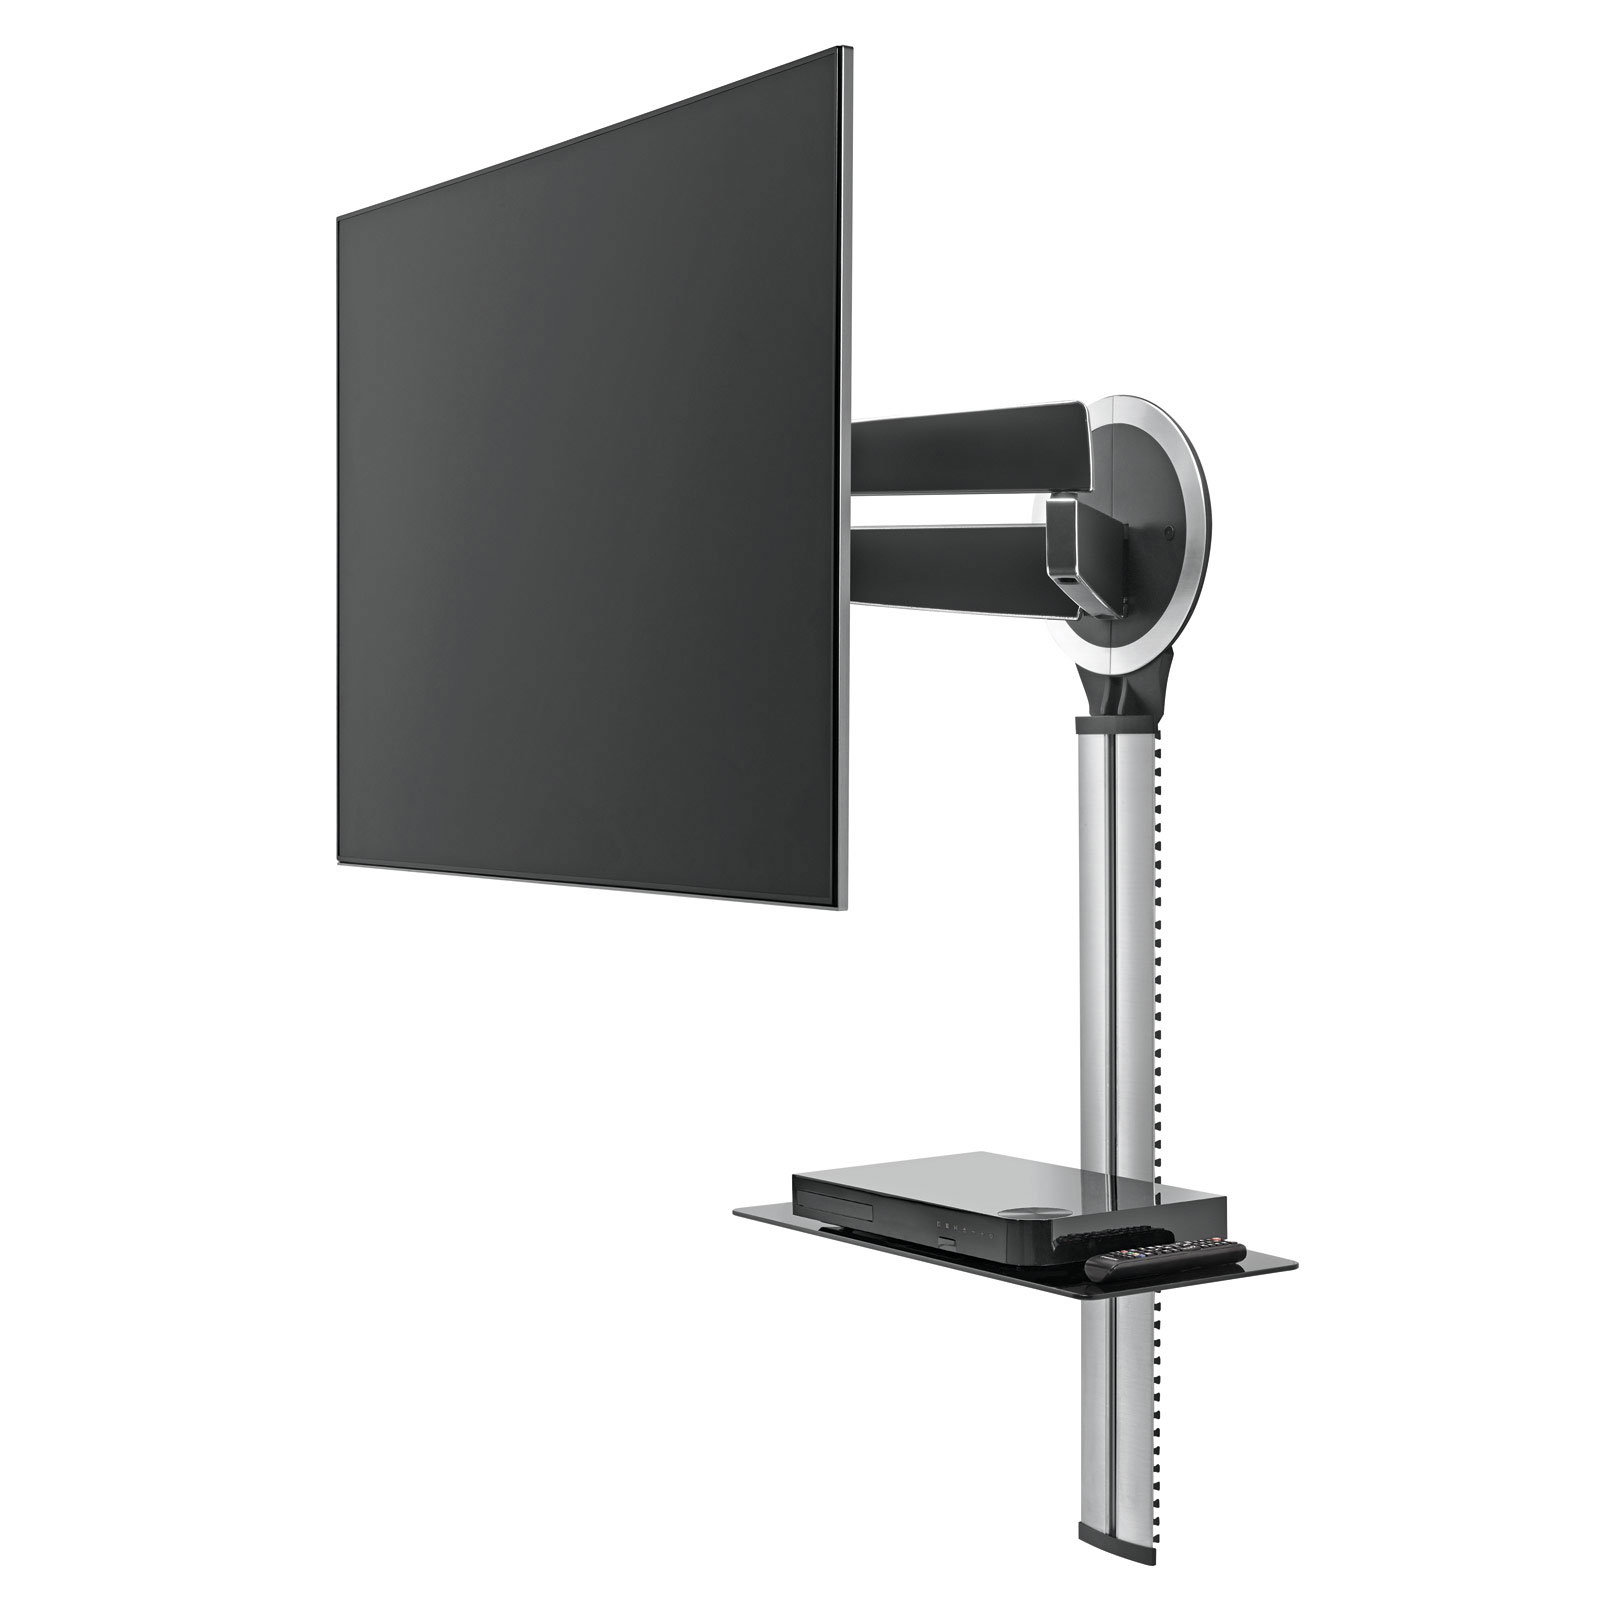 vogel 39 s designmount support mural tv vogel 39 s sur ldlc. Black Bedroom Furniture Sets. Home Design Ideas